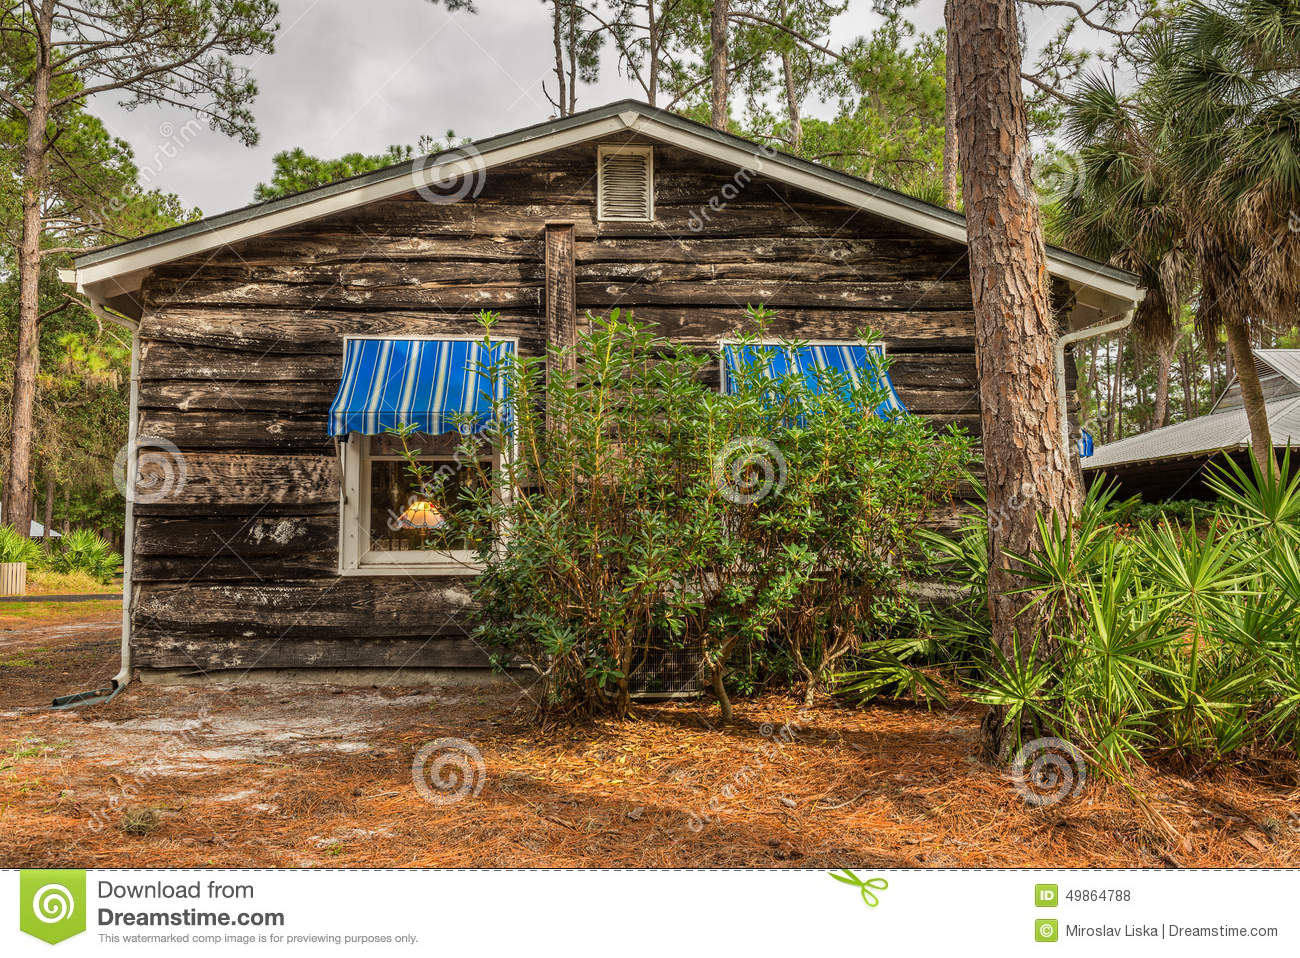 image cottages treasure rentals sunset visit florida of cottage our beach vacation island